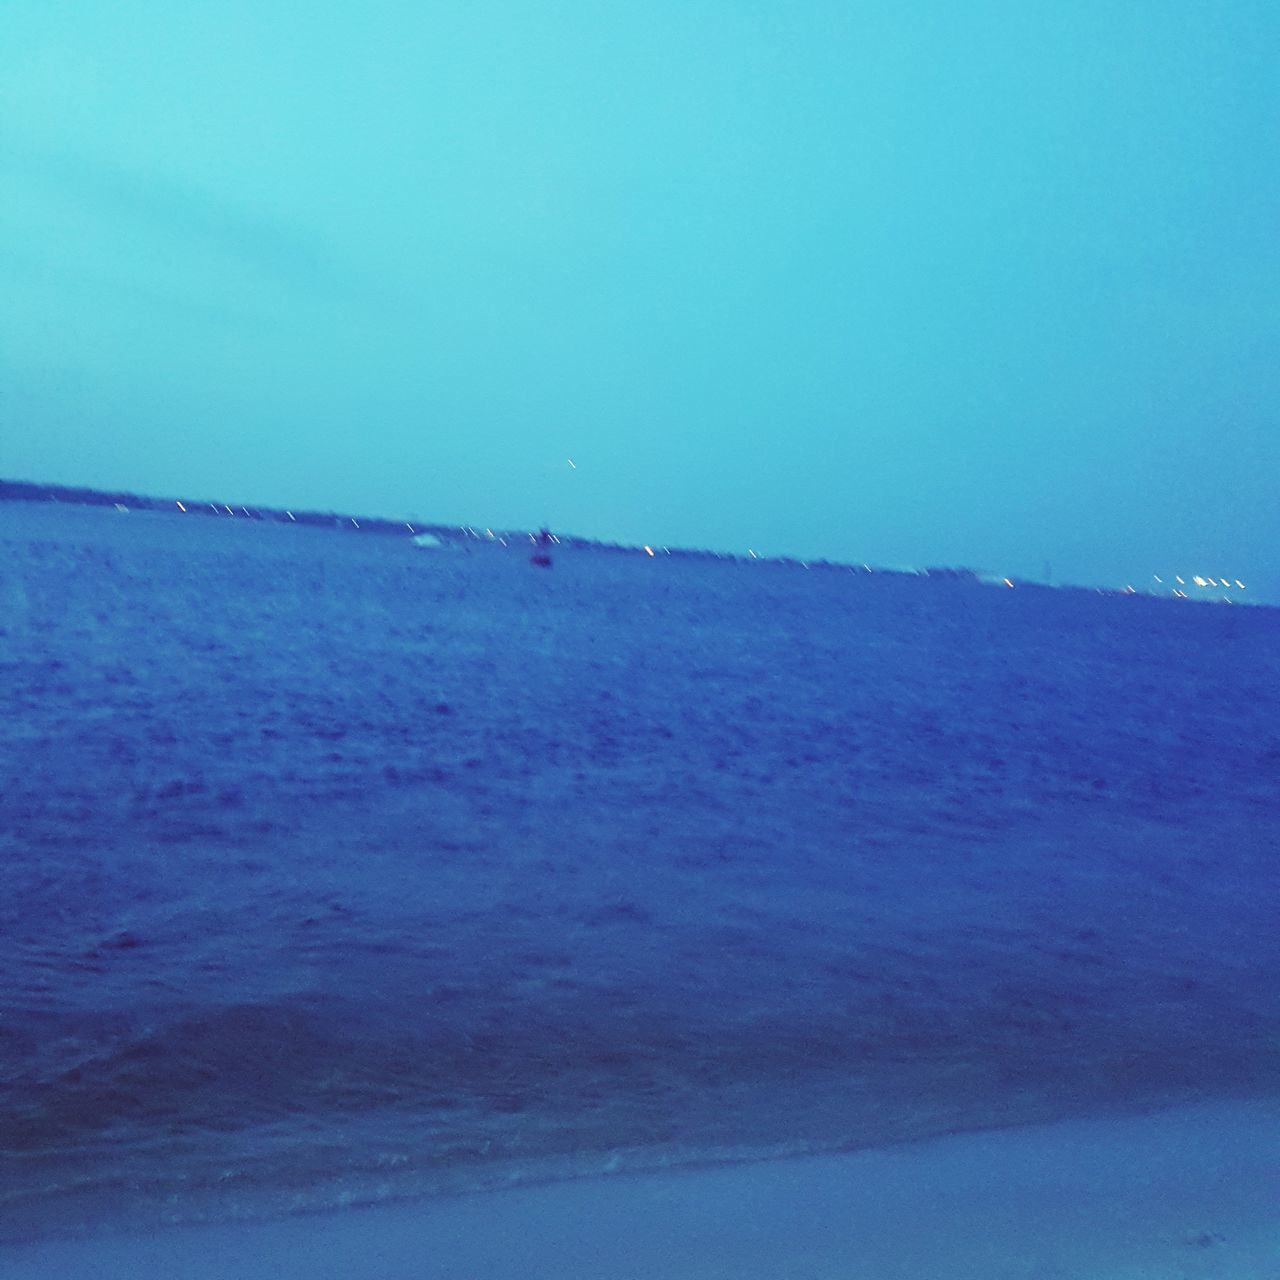 nature, sea, clear sky, tranquility, beauty in nature, scenics, tranquil scene, blue, beach, outdoors, idyllic, water, sky, landscape, day, horizon over water, no people